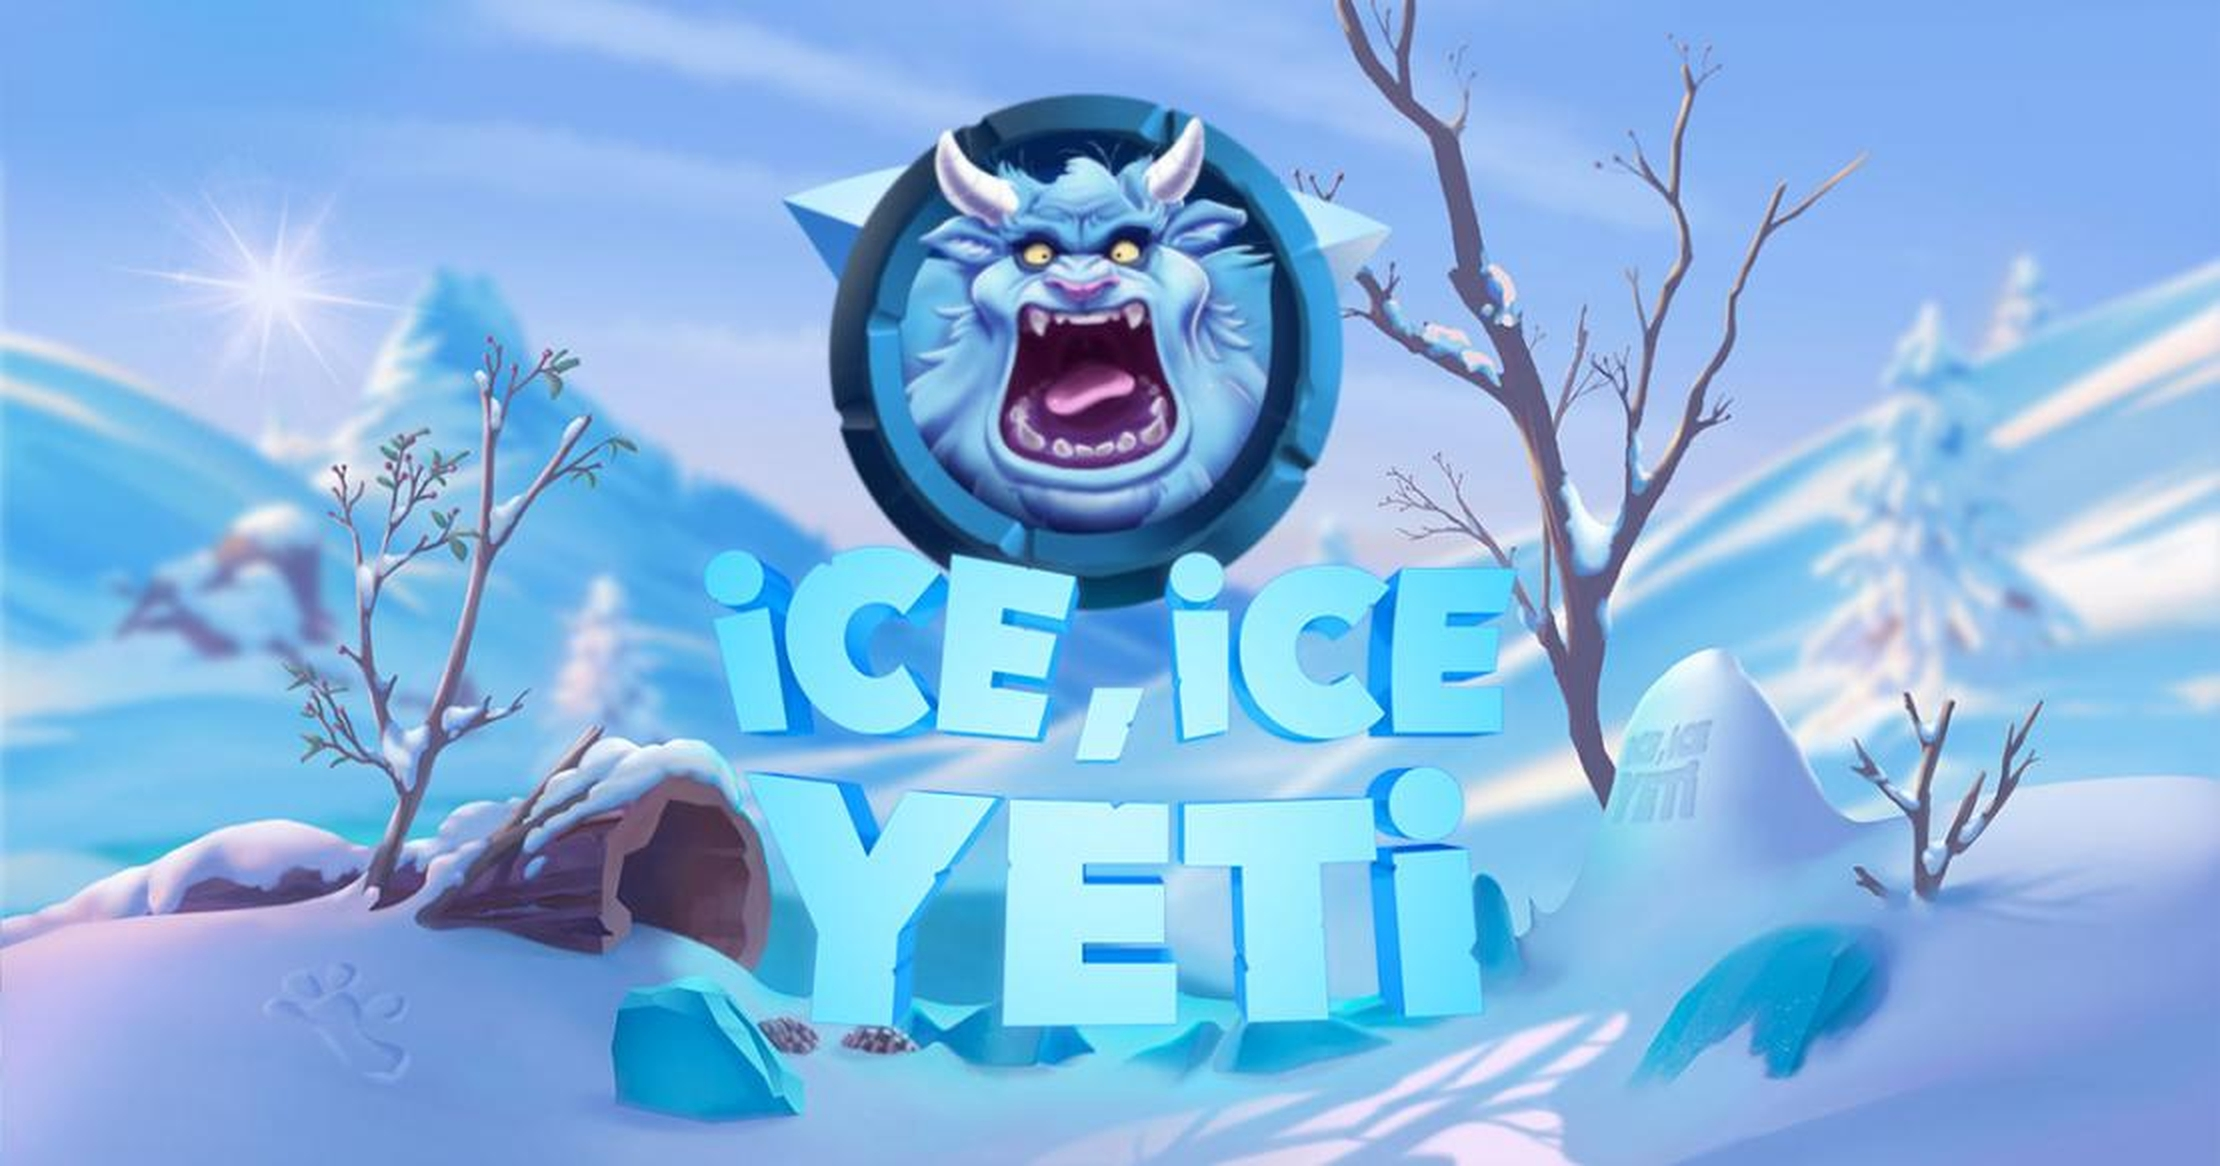 The Ice Ice Yeti Online Slot Demo Game by Nolimit City